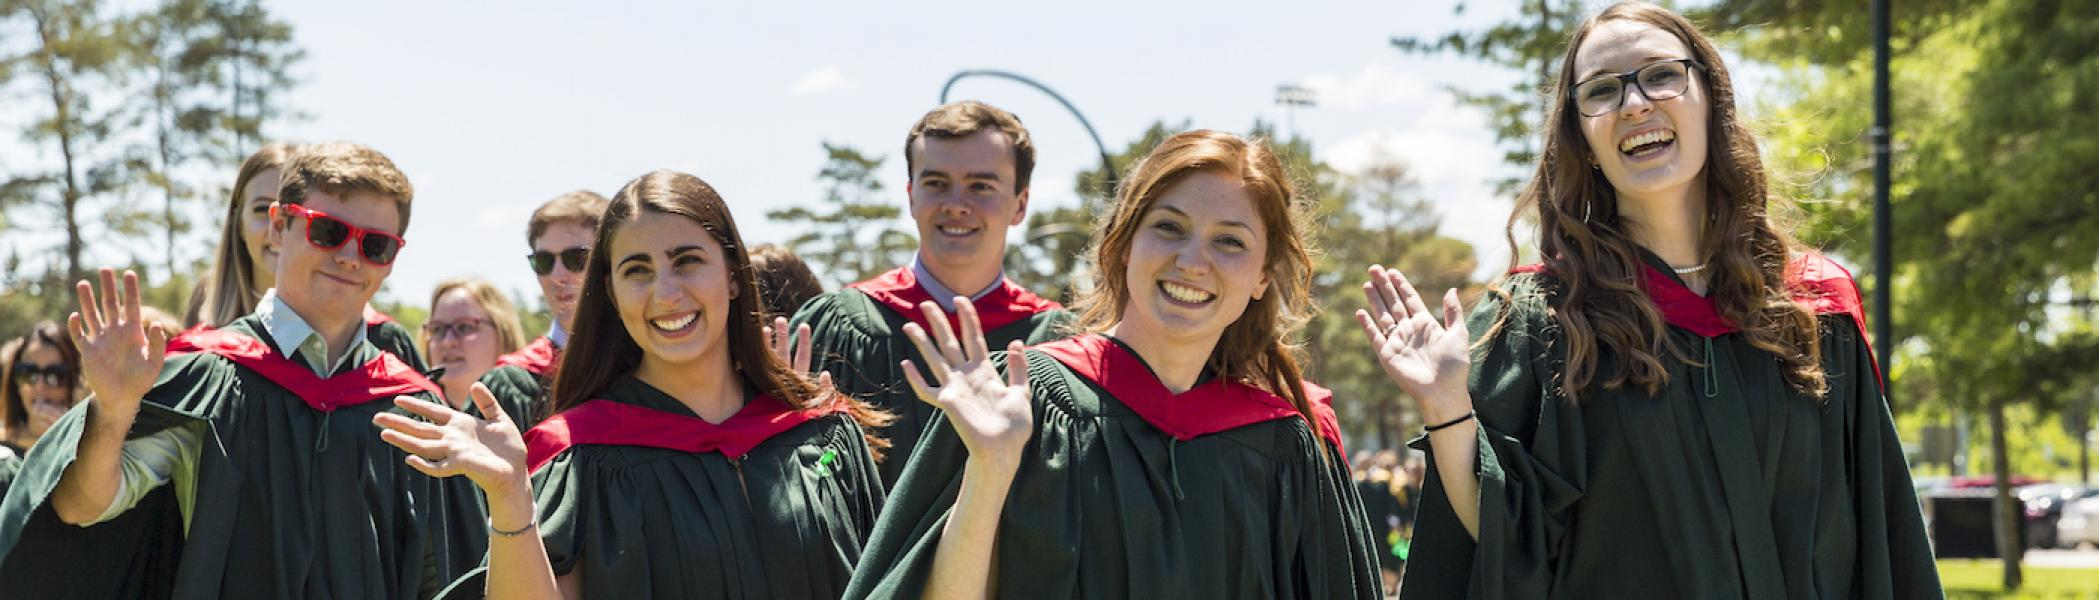 A group of students at their Trent University convocation wearing gowns and smiling.